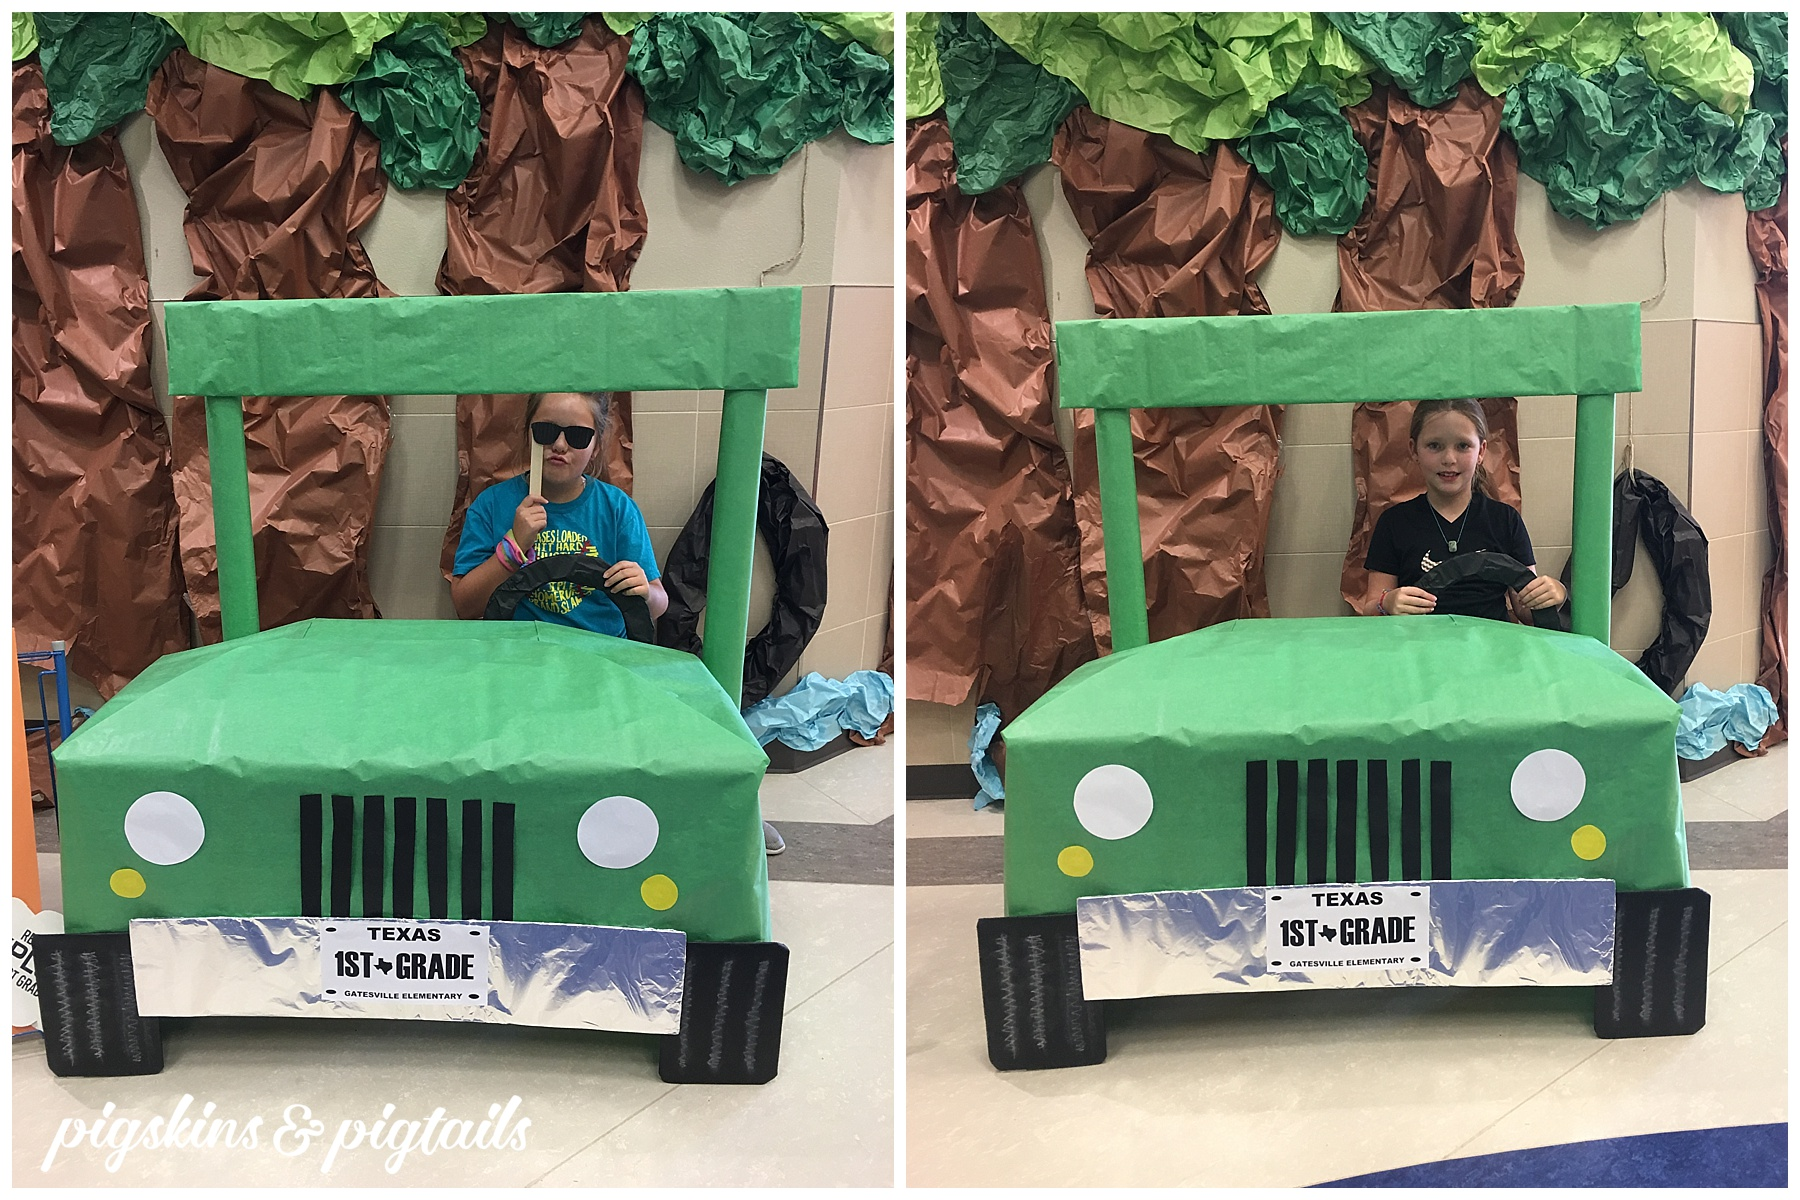 Jeep First Grade Photo Booth